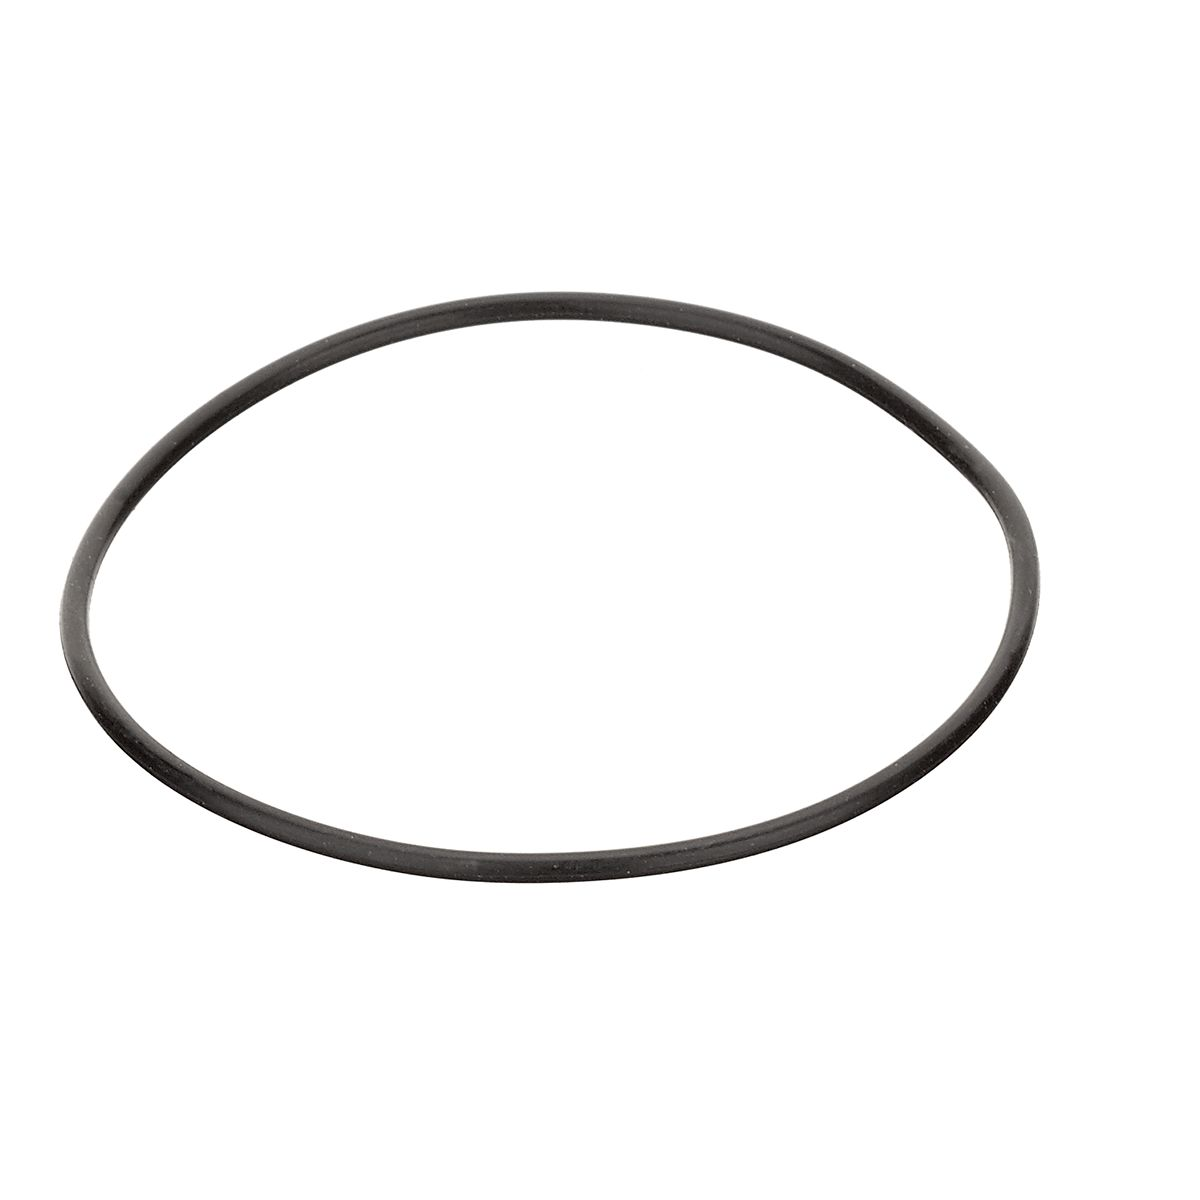 O-Ring Seal for CPTL Headset